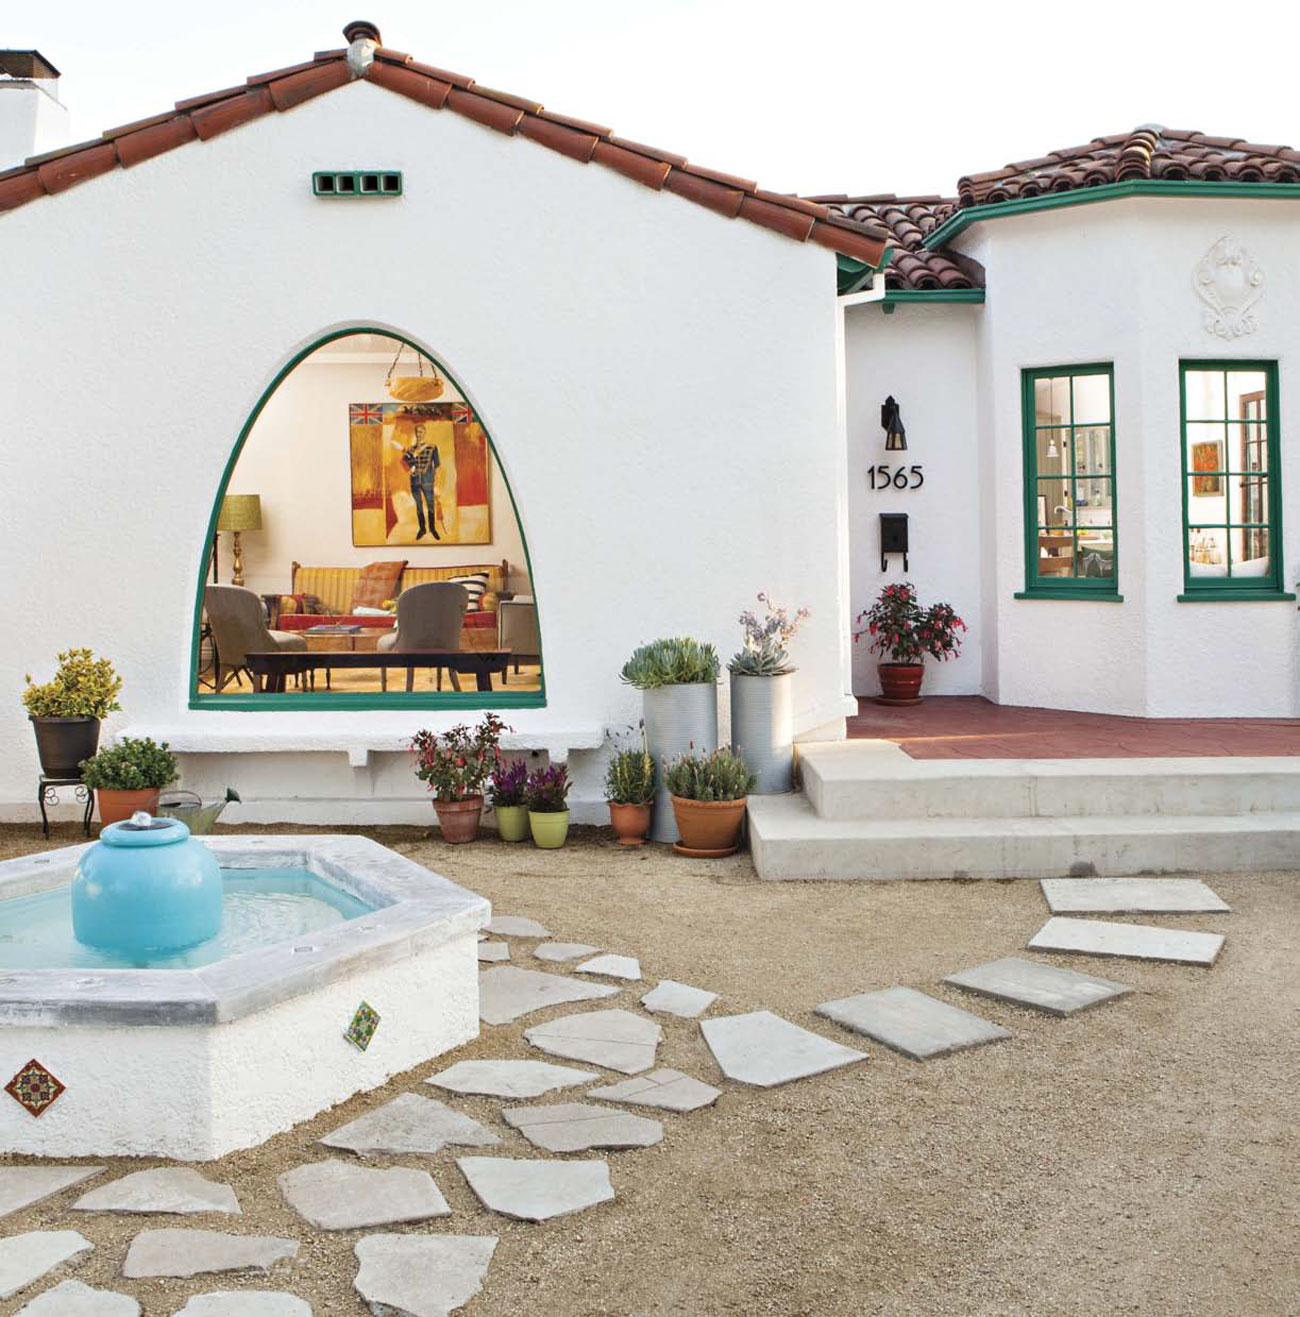 Front yard view of a Spanish bungalow with stone walkway and a fountain feature.